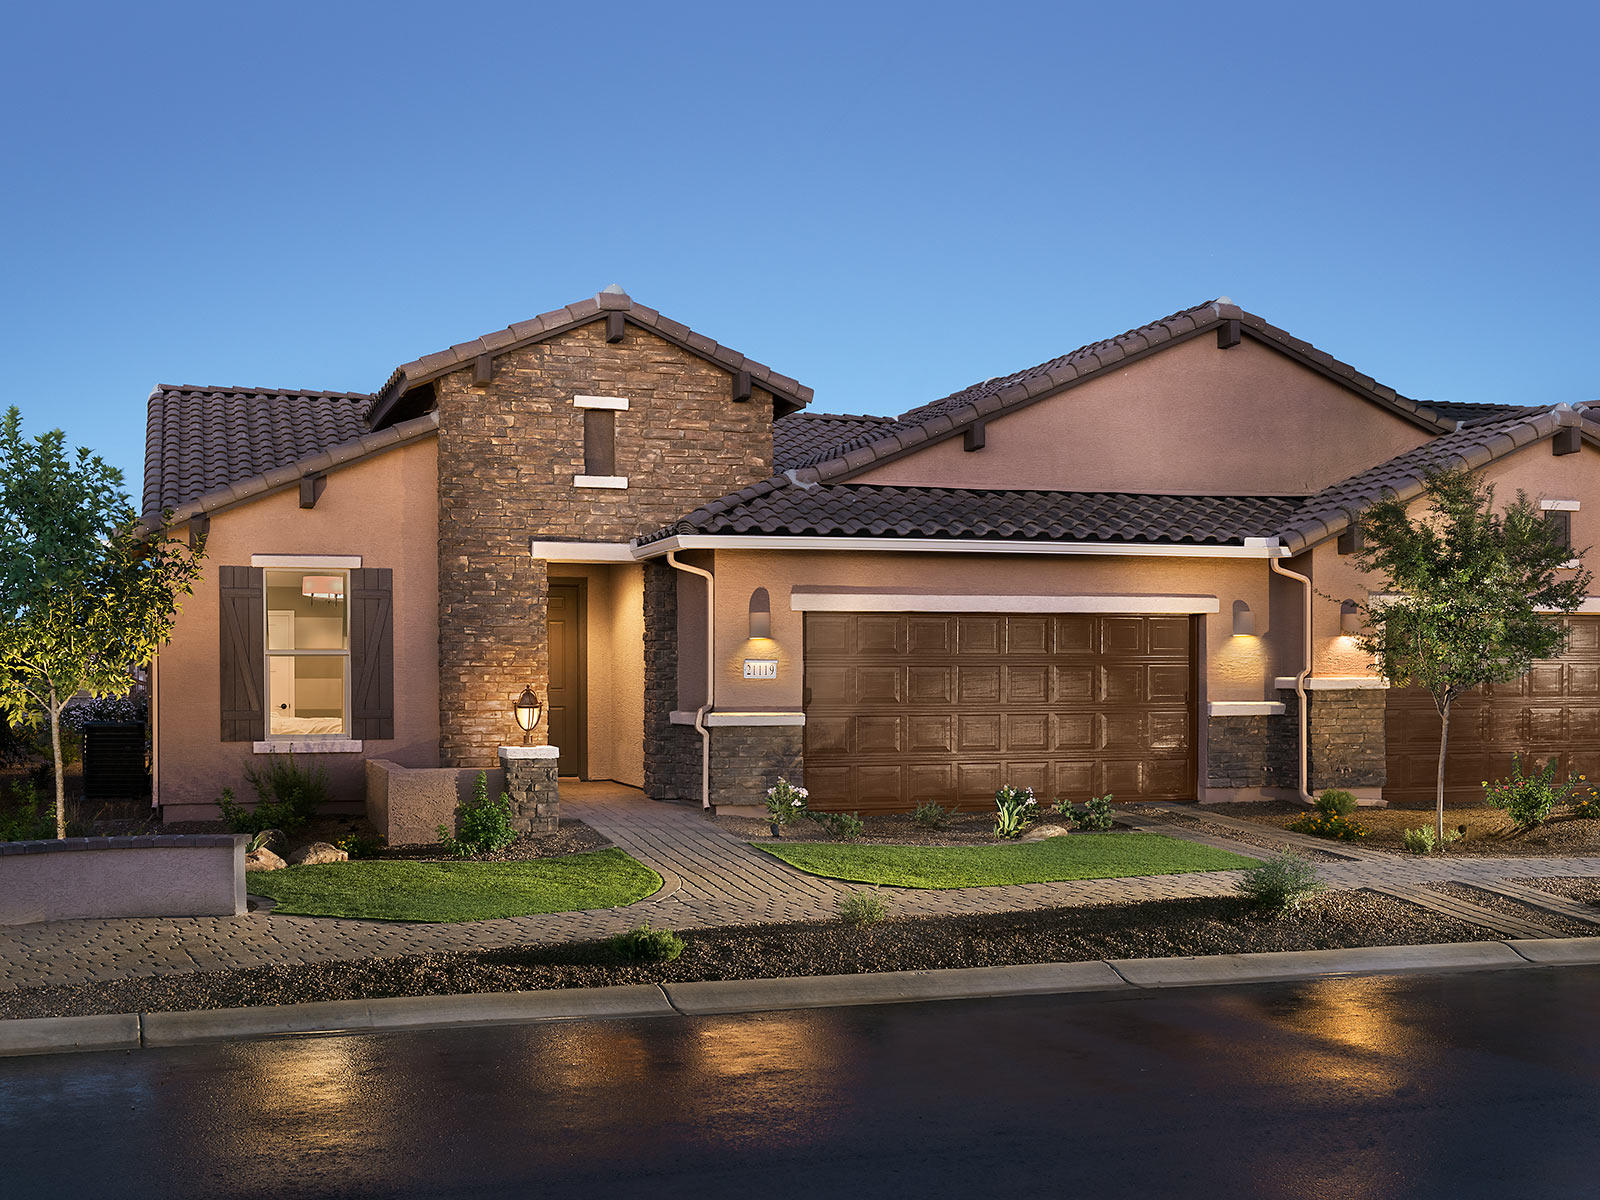 Marvelous Villas At Province By Meritage Homes New Homes For Sale Maricopa Az Trulia Download Free Architecture Designs Intelgarnamadebymaigaardcom